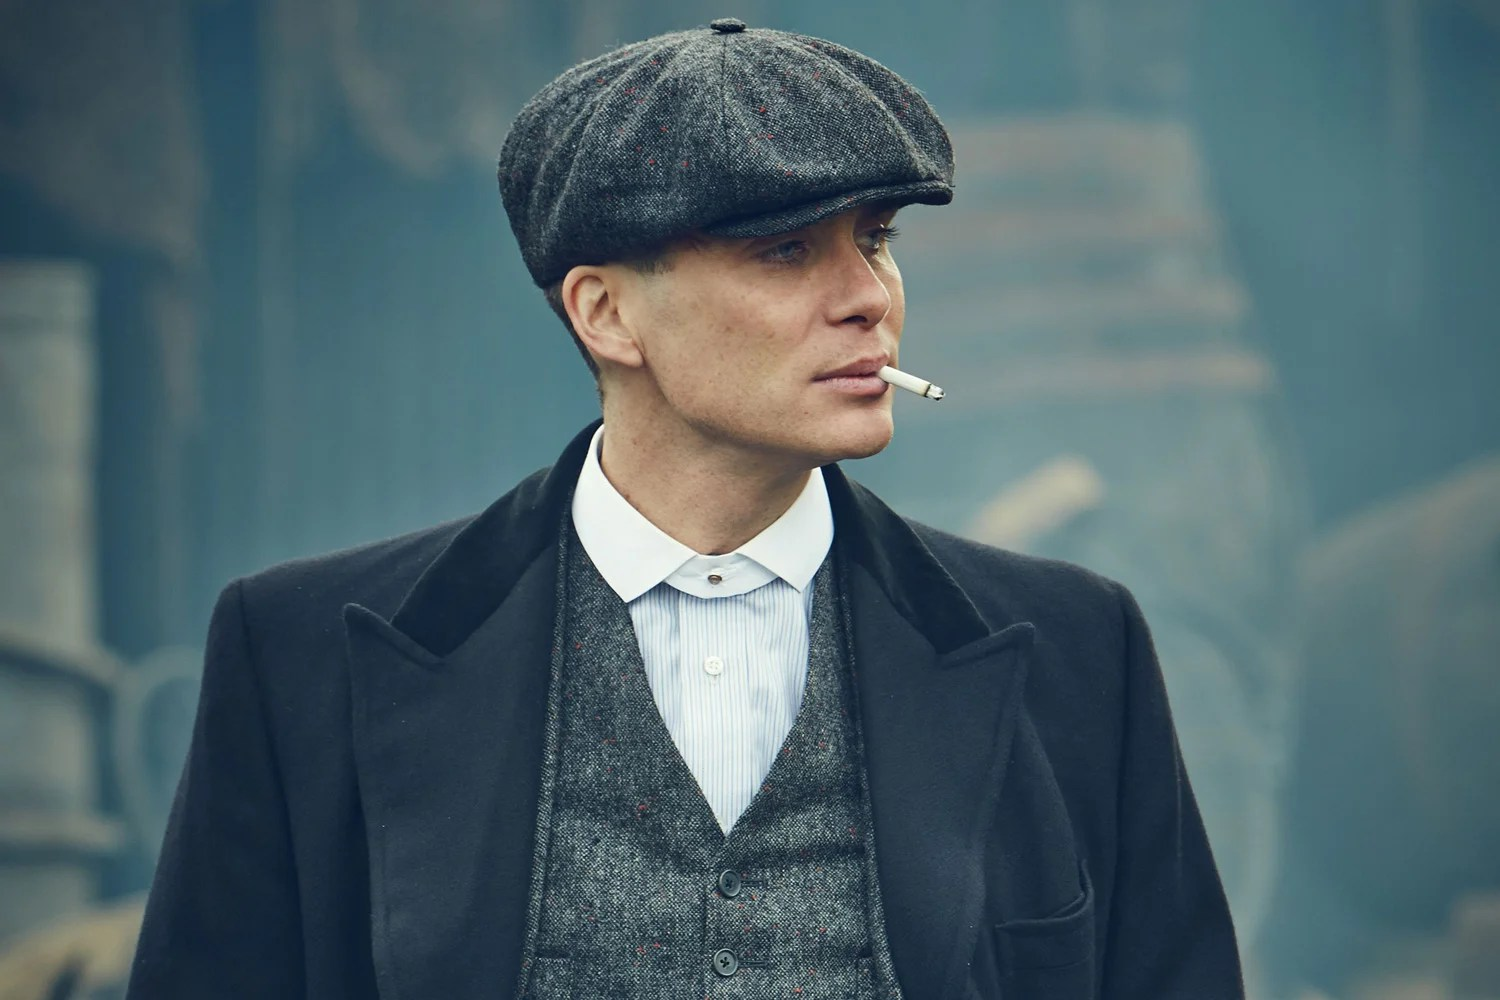 Cigarette Wallpaper Hd Peaky Blinders Season 3 A Mystery Wedding New Cast And